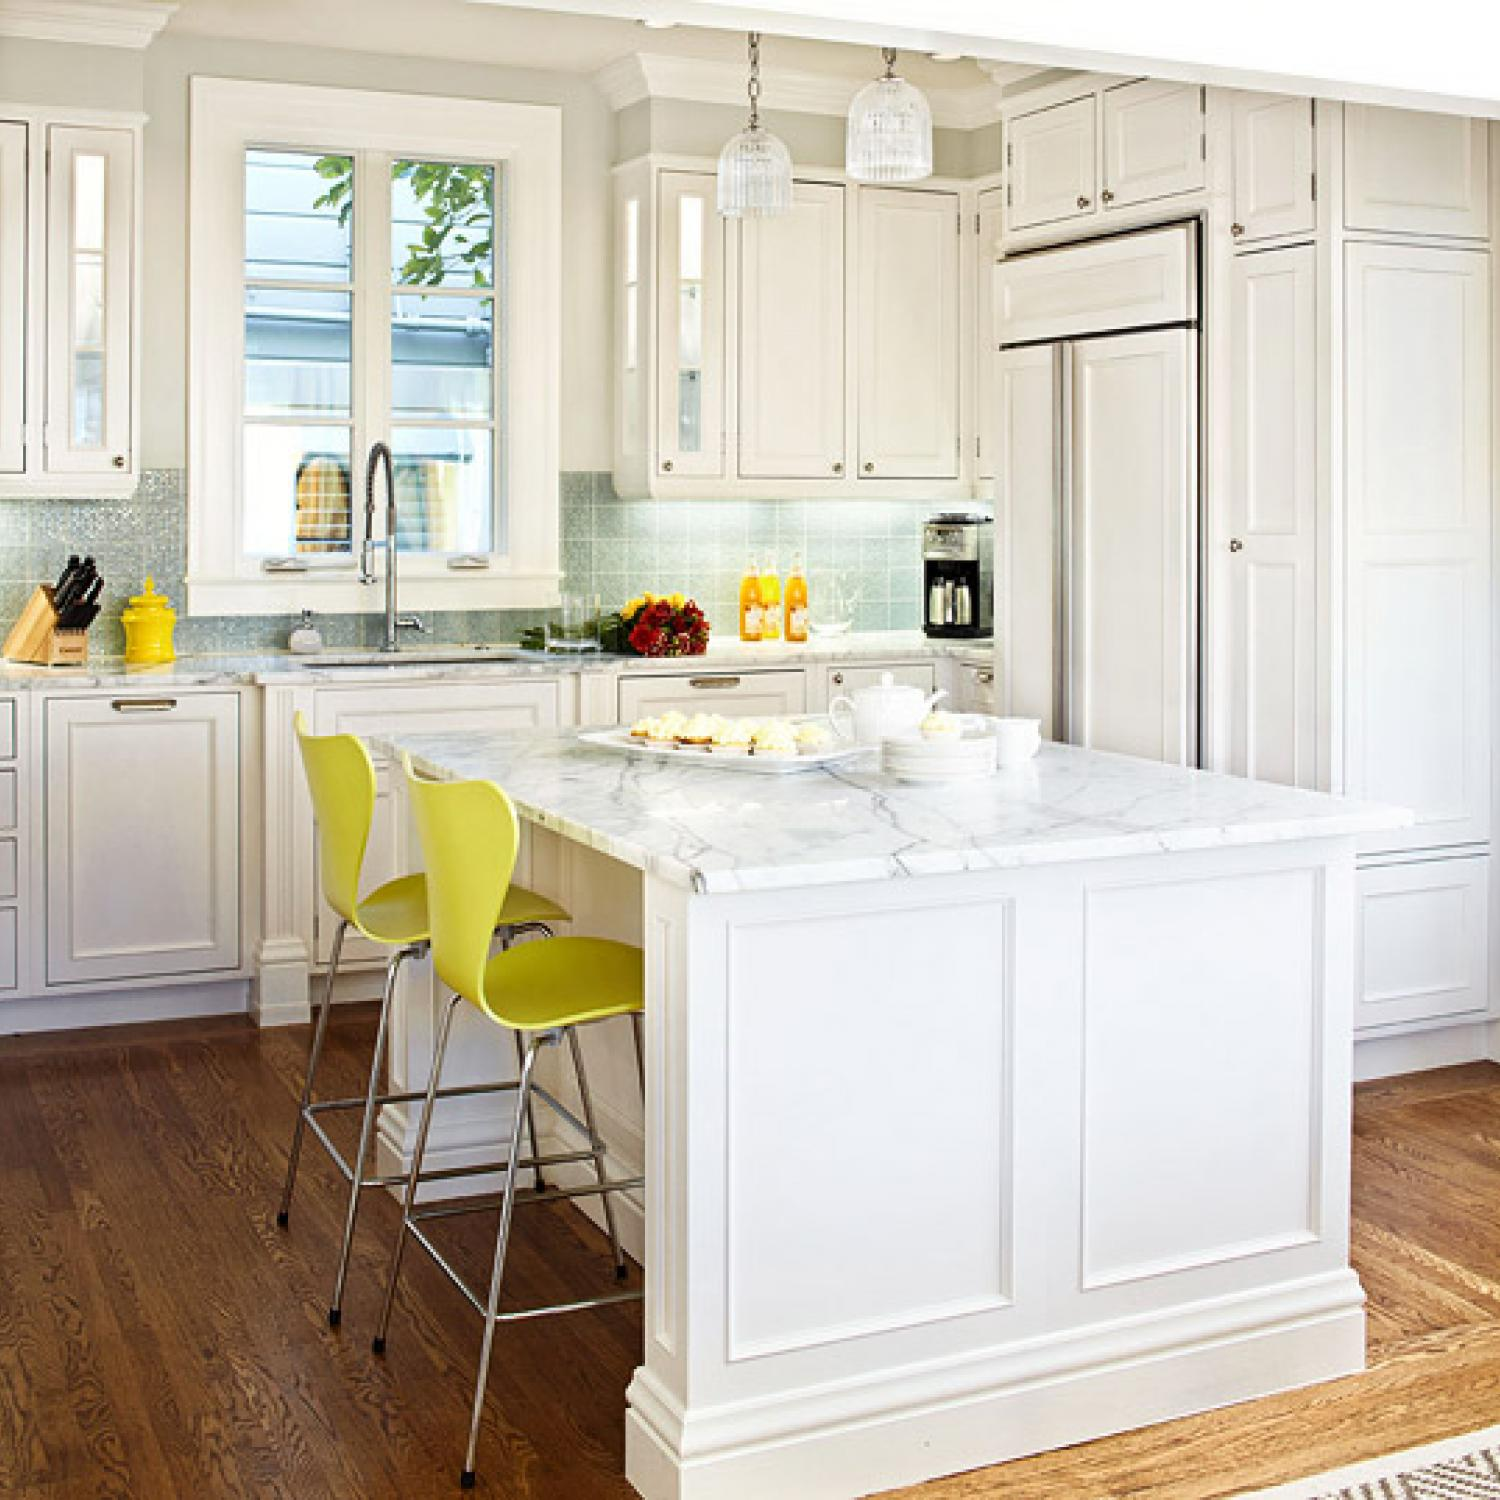 Design ideas for white kitchens traditional home for White kitchens cabinets